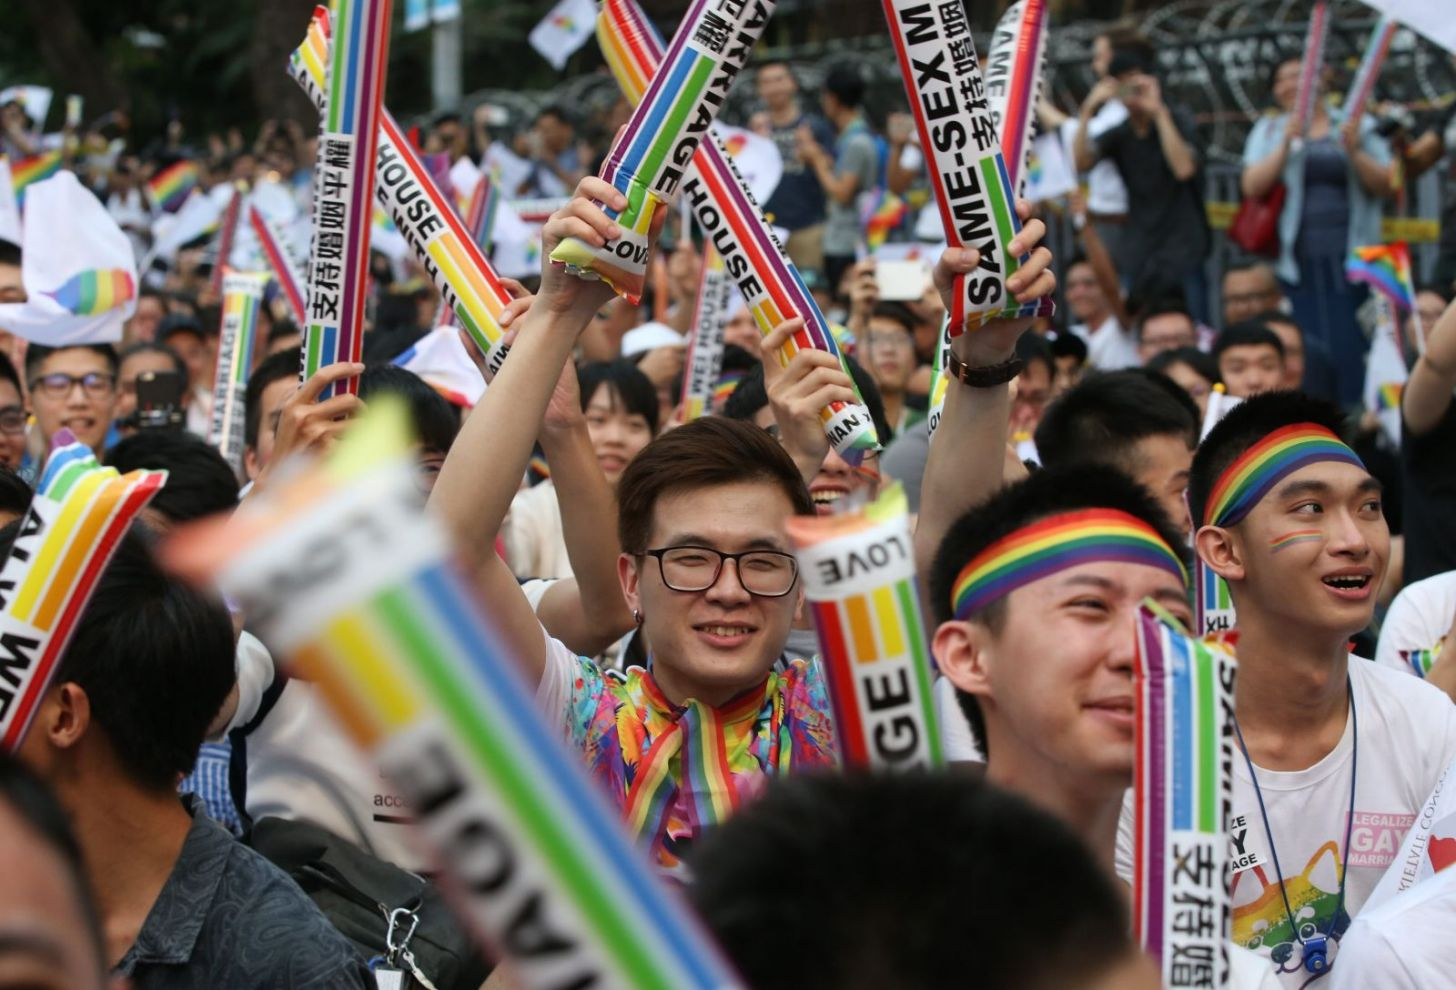 TAIWAN; FIRST ASIAN NATION TO LEGALIZE SAME-SEX UNIONS ...